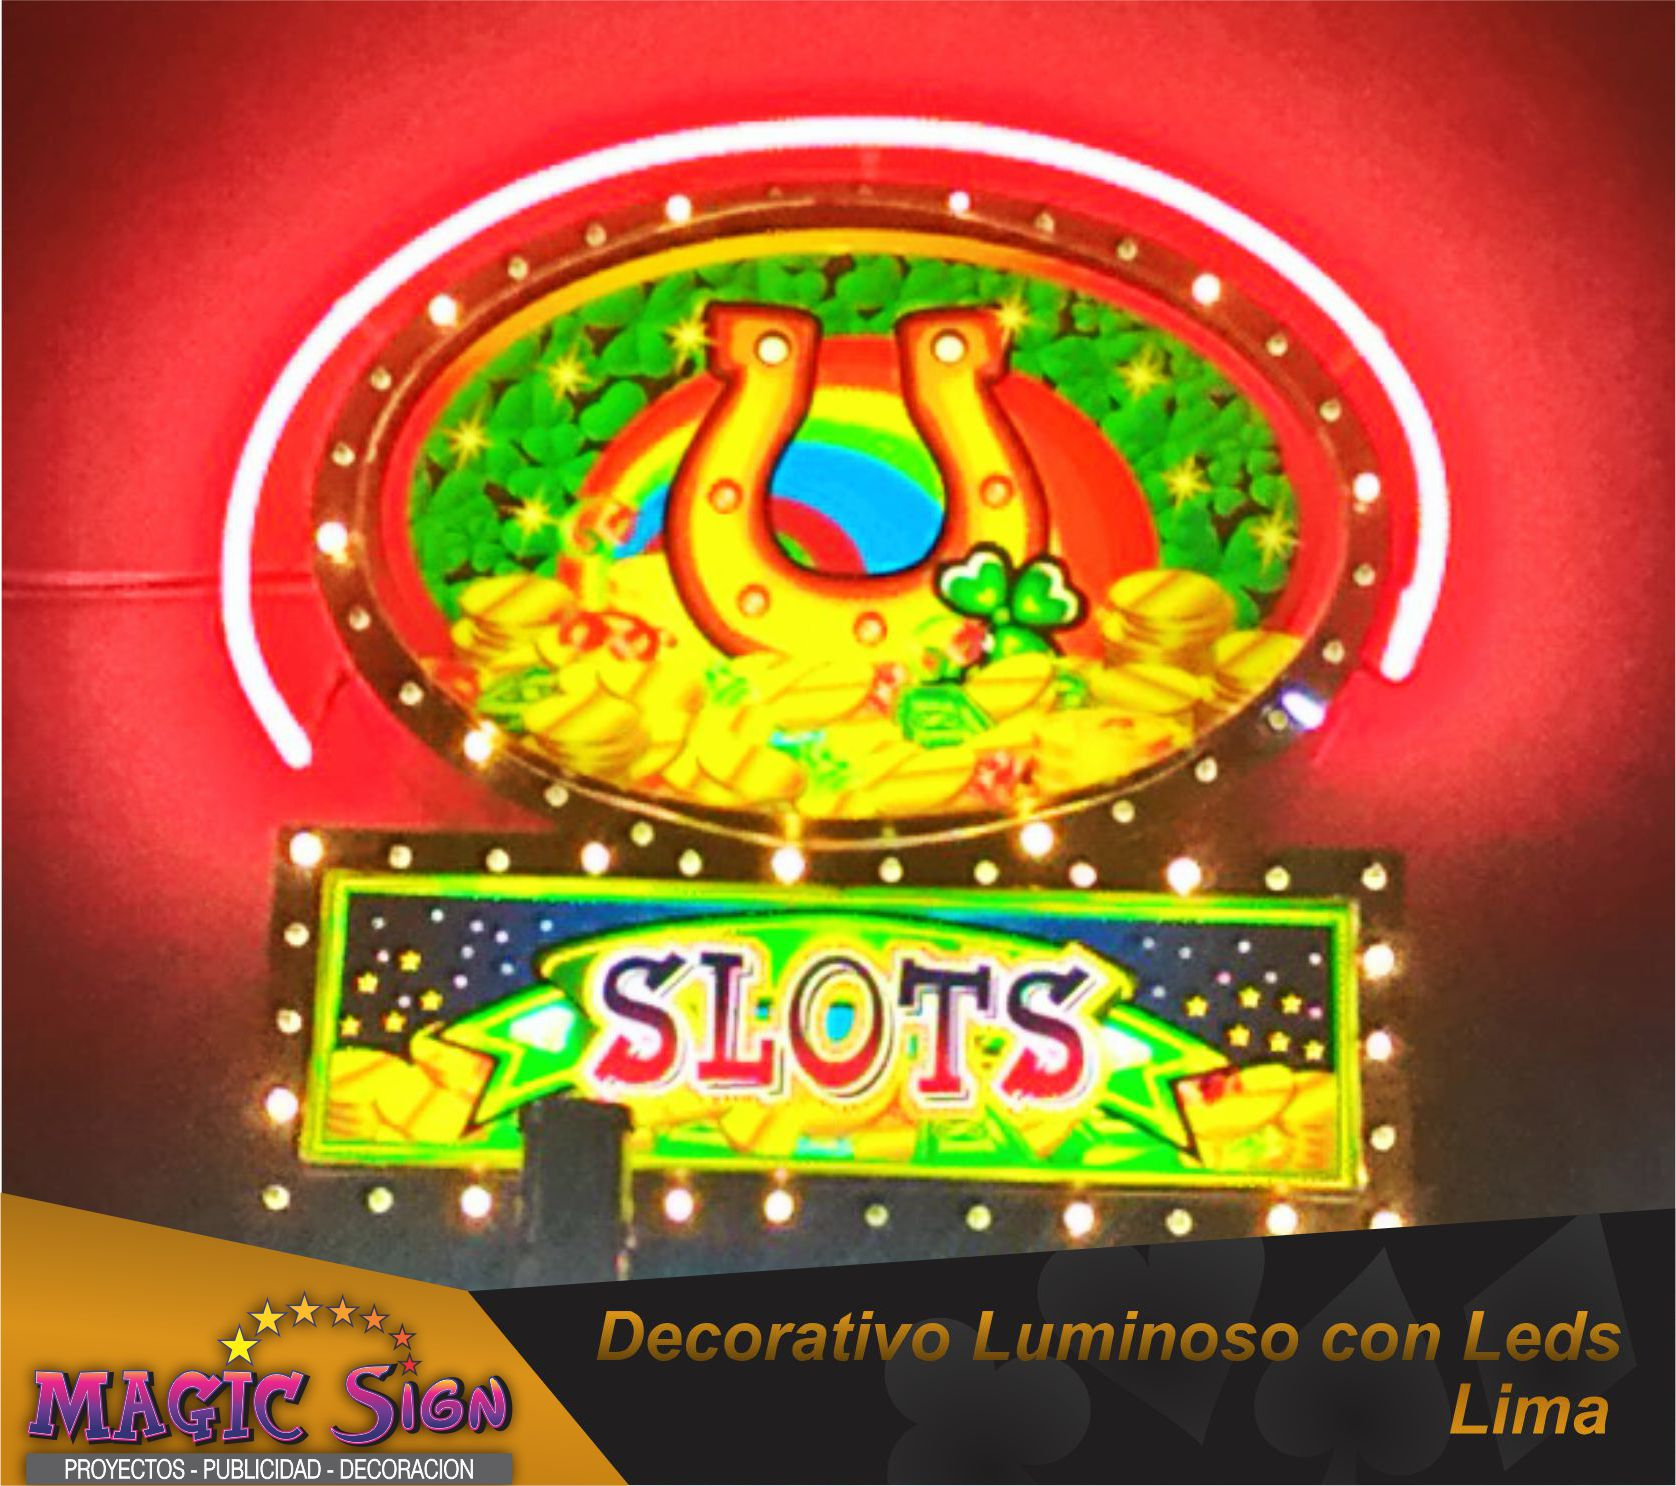 Led luminoso para casinos